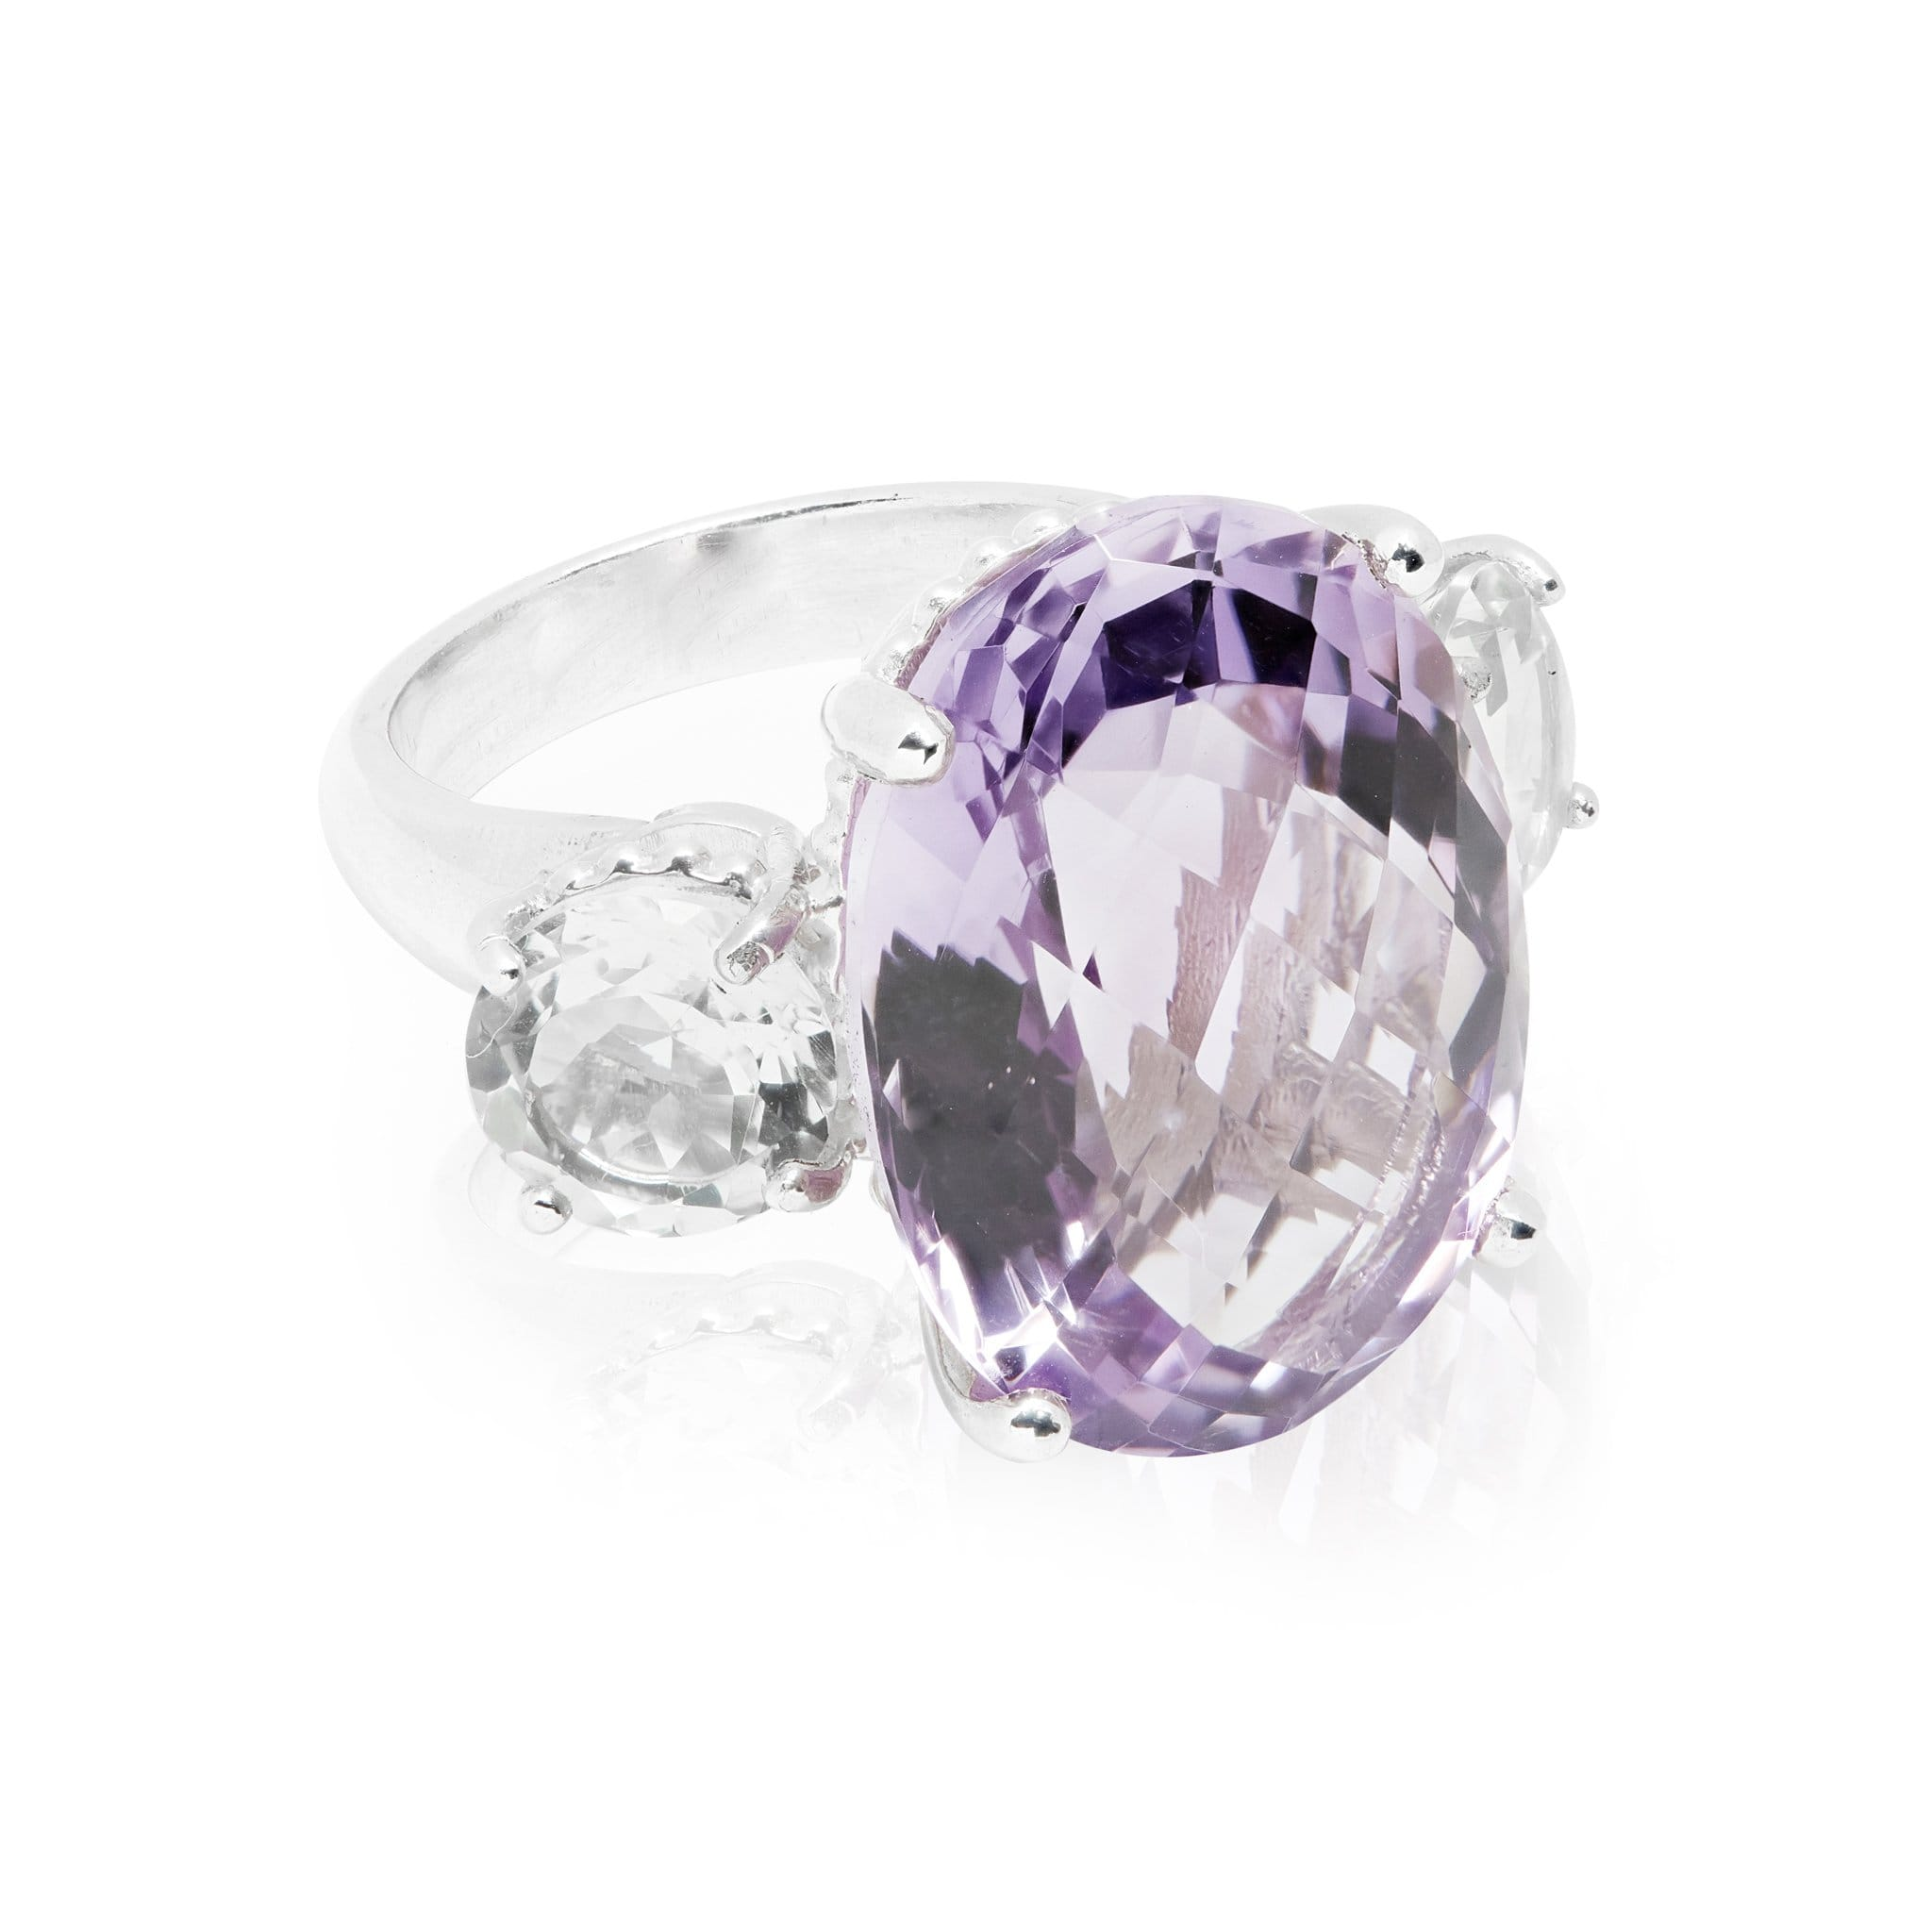 The Renaissance Statement ring in purple amethyst and crystal quartz.